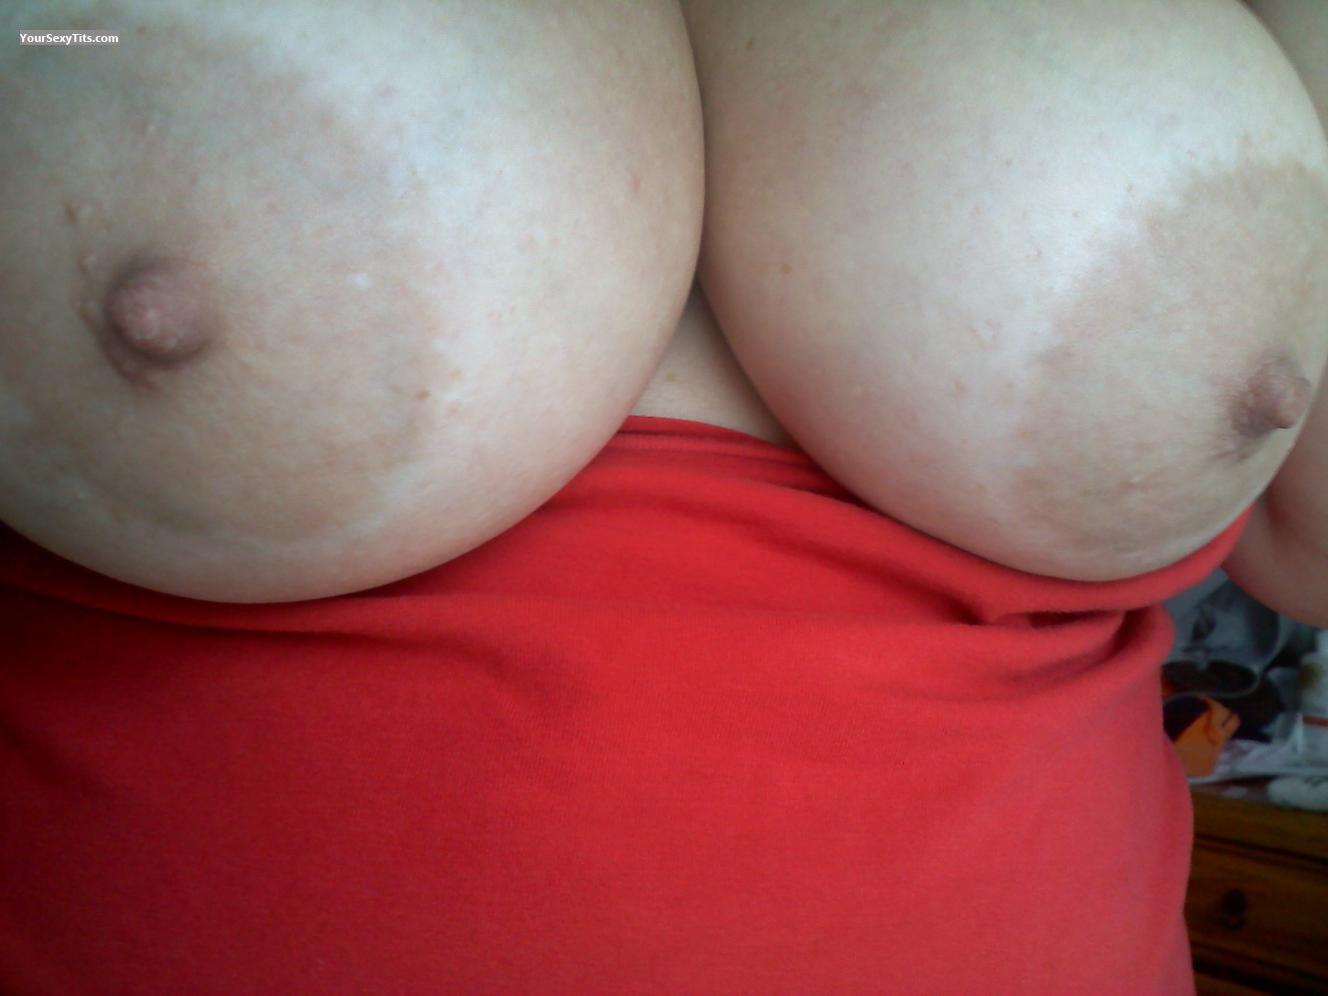 Tit Flash: My Very Big Tits (Selfie) - Al from United States